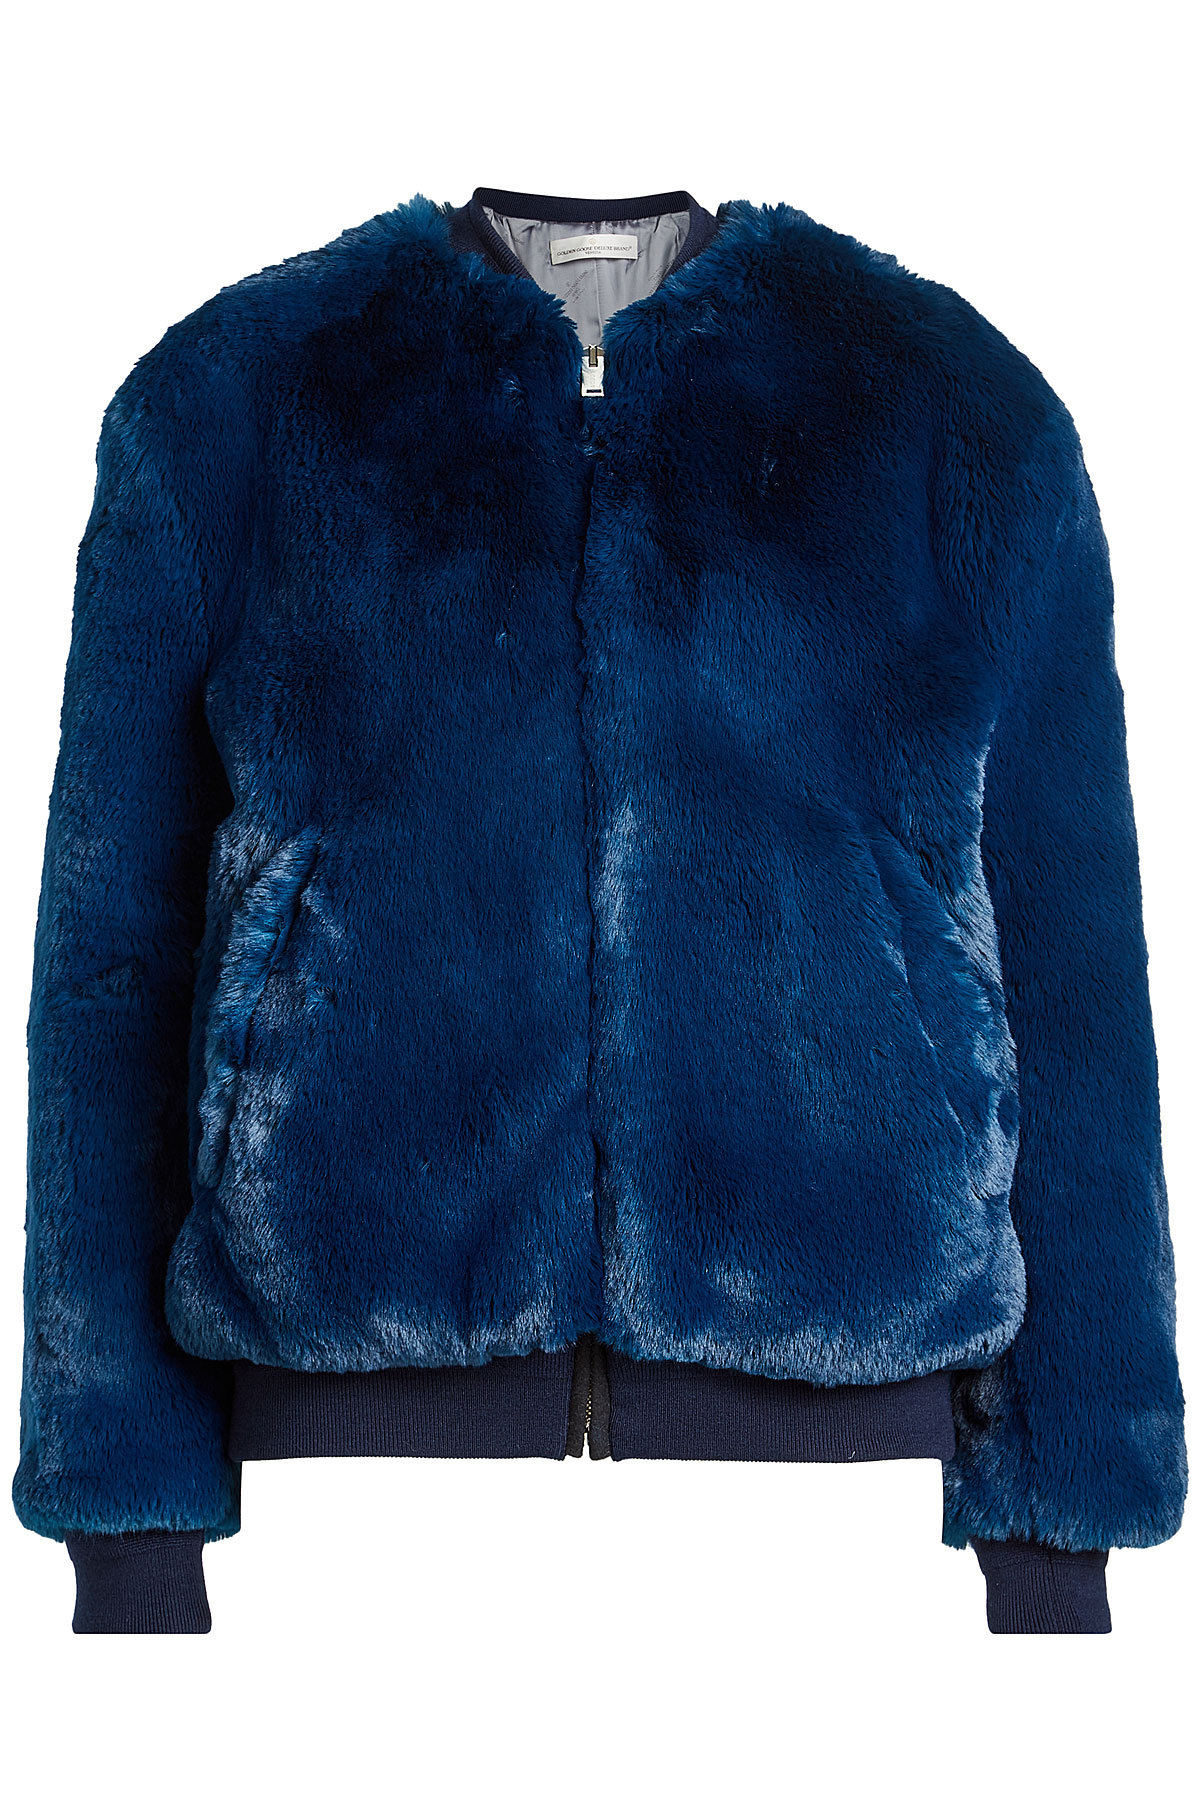 Faux Fur Jacket | GOLDEN GOOSE DELUXE BRAND